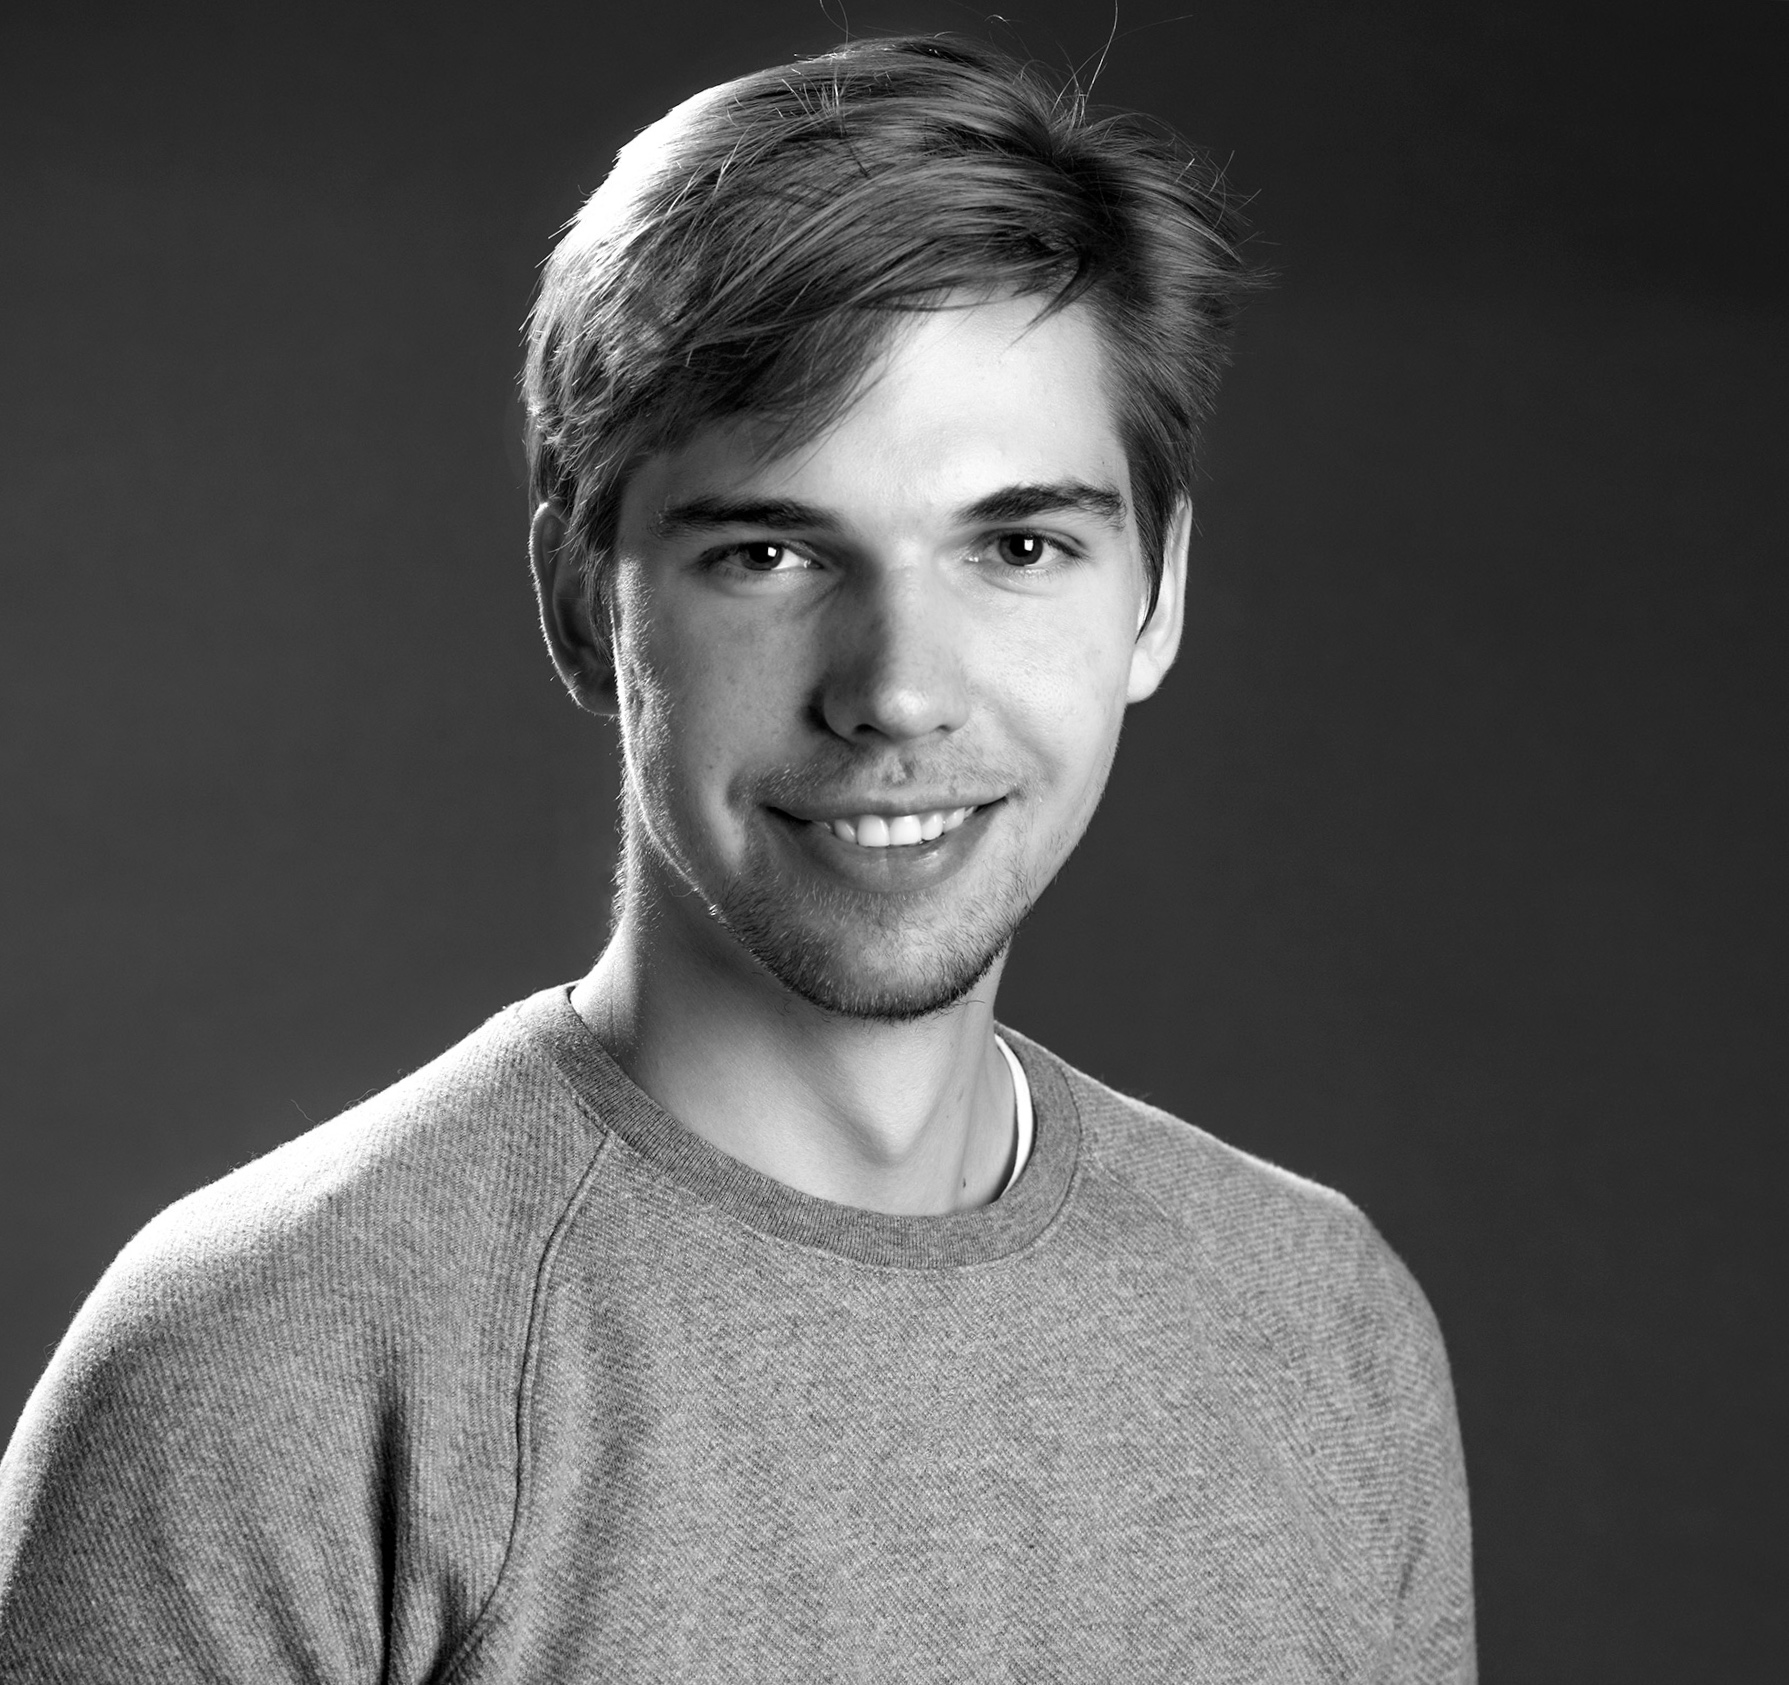 Evgeny Gushchin - With a background in mathematics and finance, I'm an ambidextrous designer who takes a unique approach that blends analytical and creative thinking to solve clients' problems.